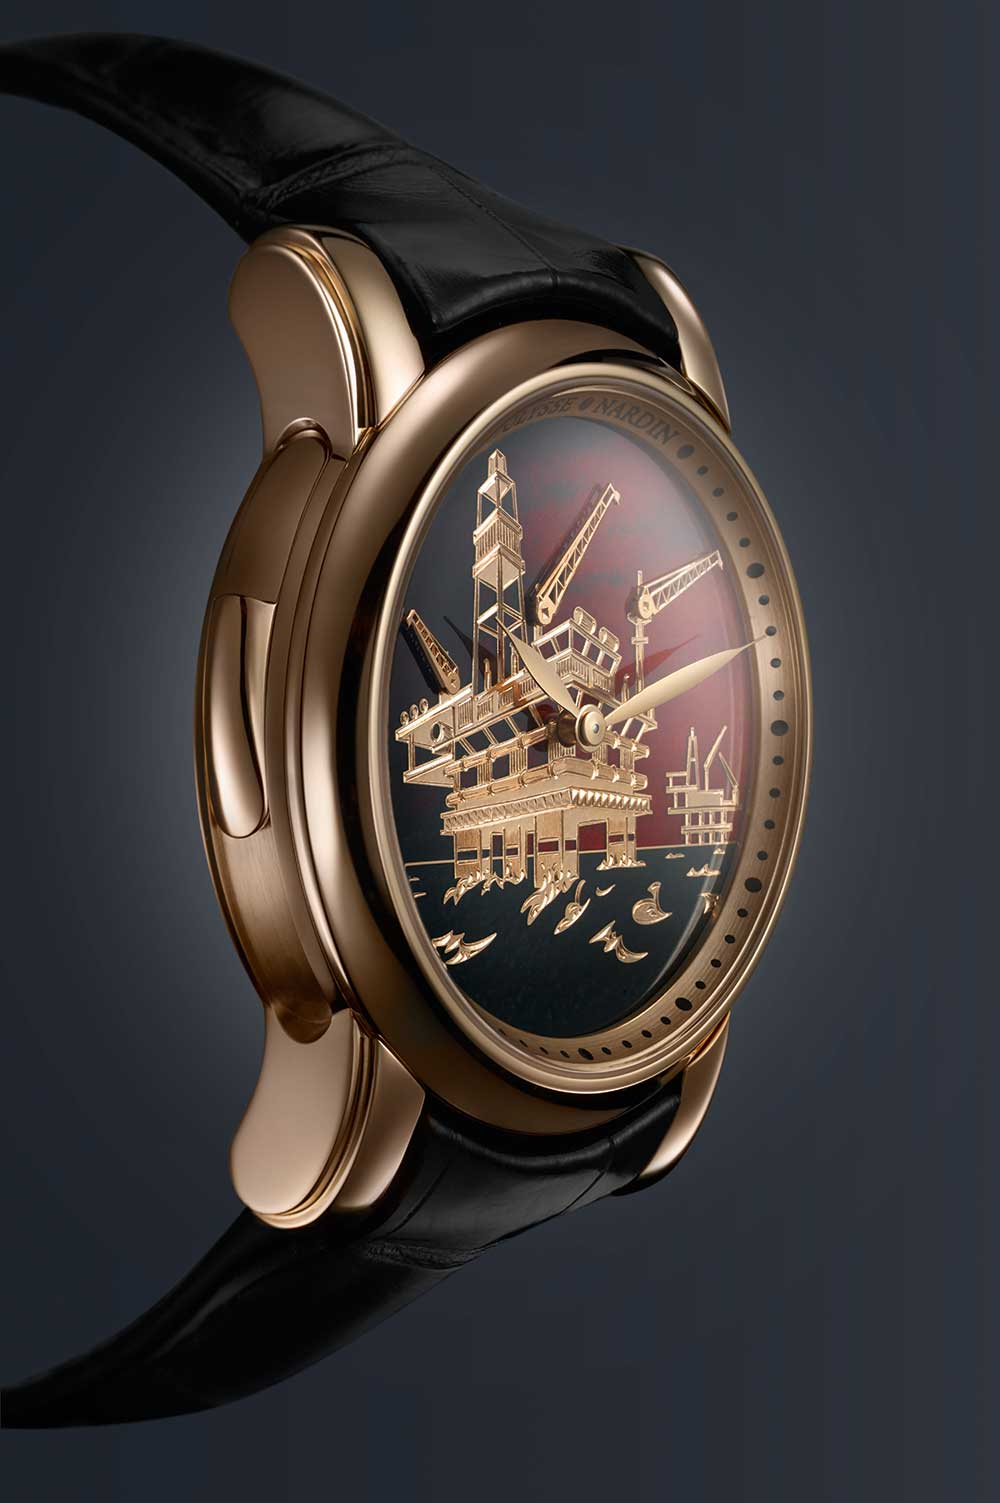 Ulysse Nardin North Sea Minute Repeater gold case